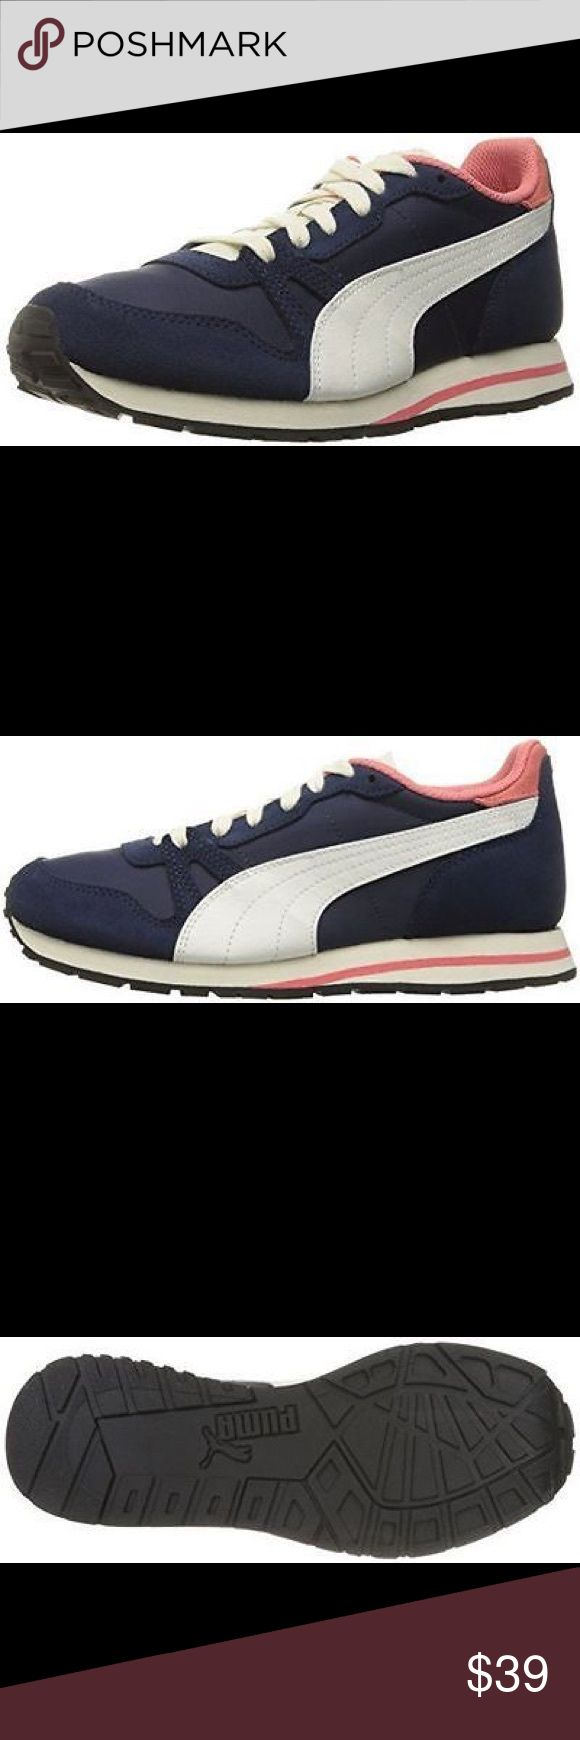 Puma women's Yarra classic shoes size  7.5  ✨ Inspired from the iconic duplex family and the 80s runner codes, the yarra classic features leather/suede and textile materials in the construction of the upper, presenting a lot of choice for those looking to stay stylish!! Puma Shoes Athletic Shoes